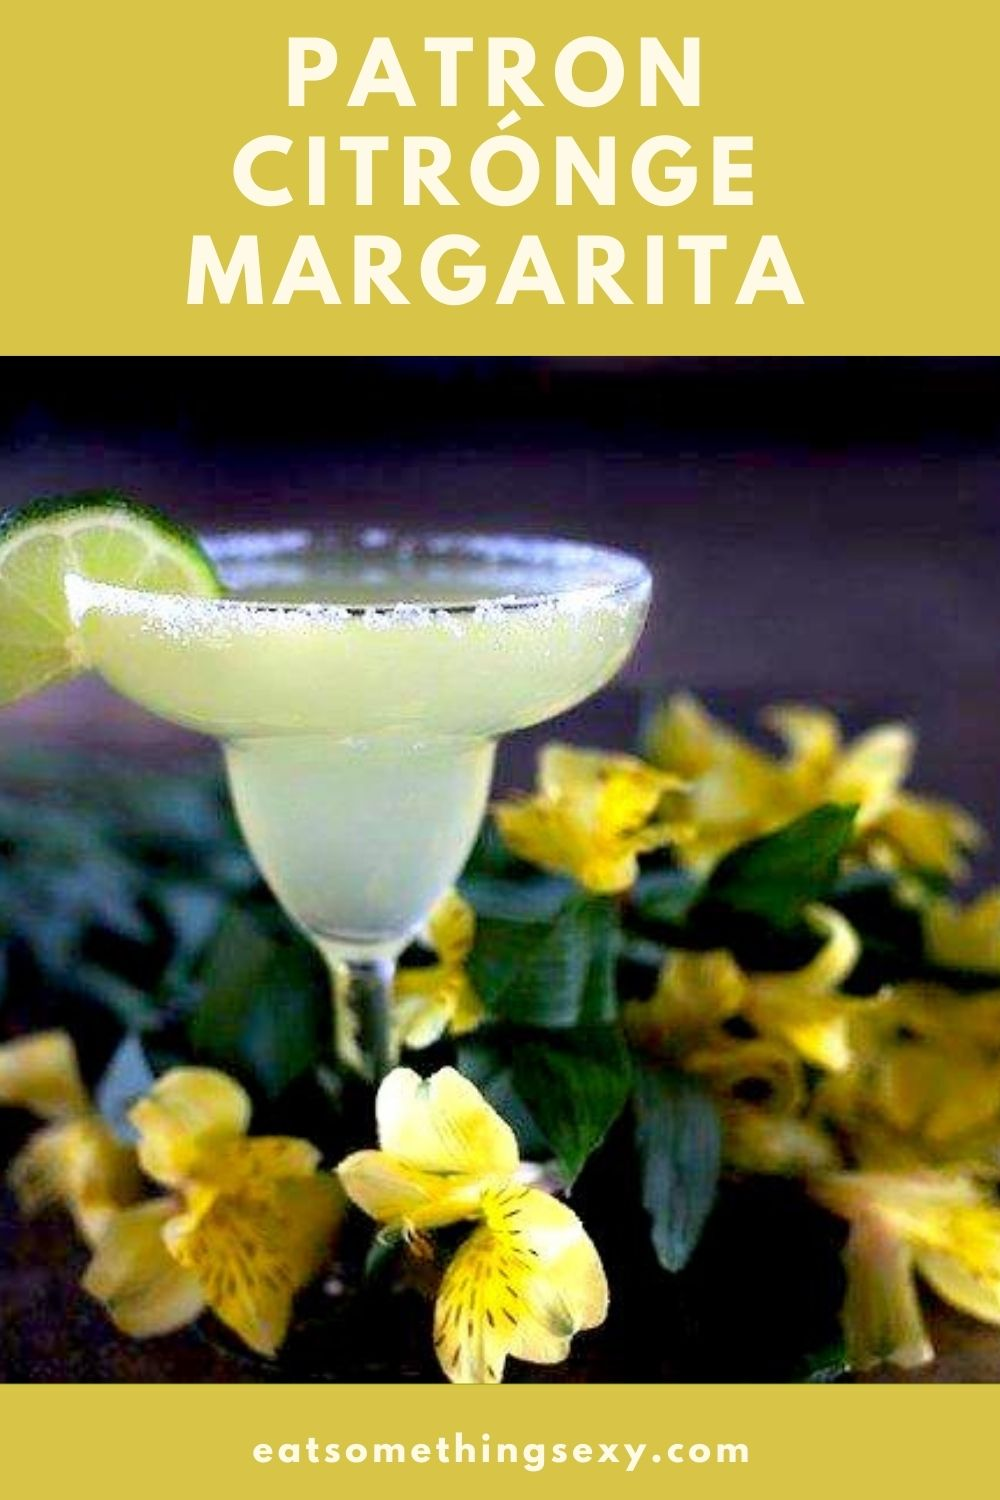 Patron Citronge Margarita Recipe Graphic